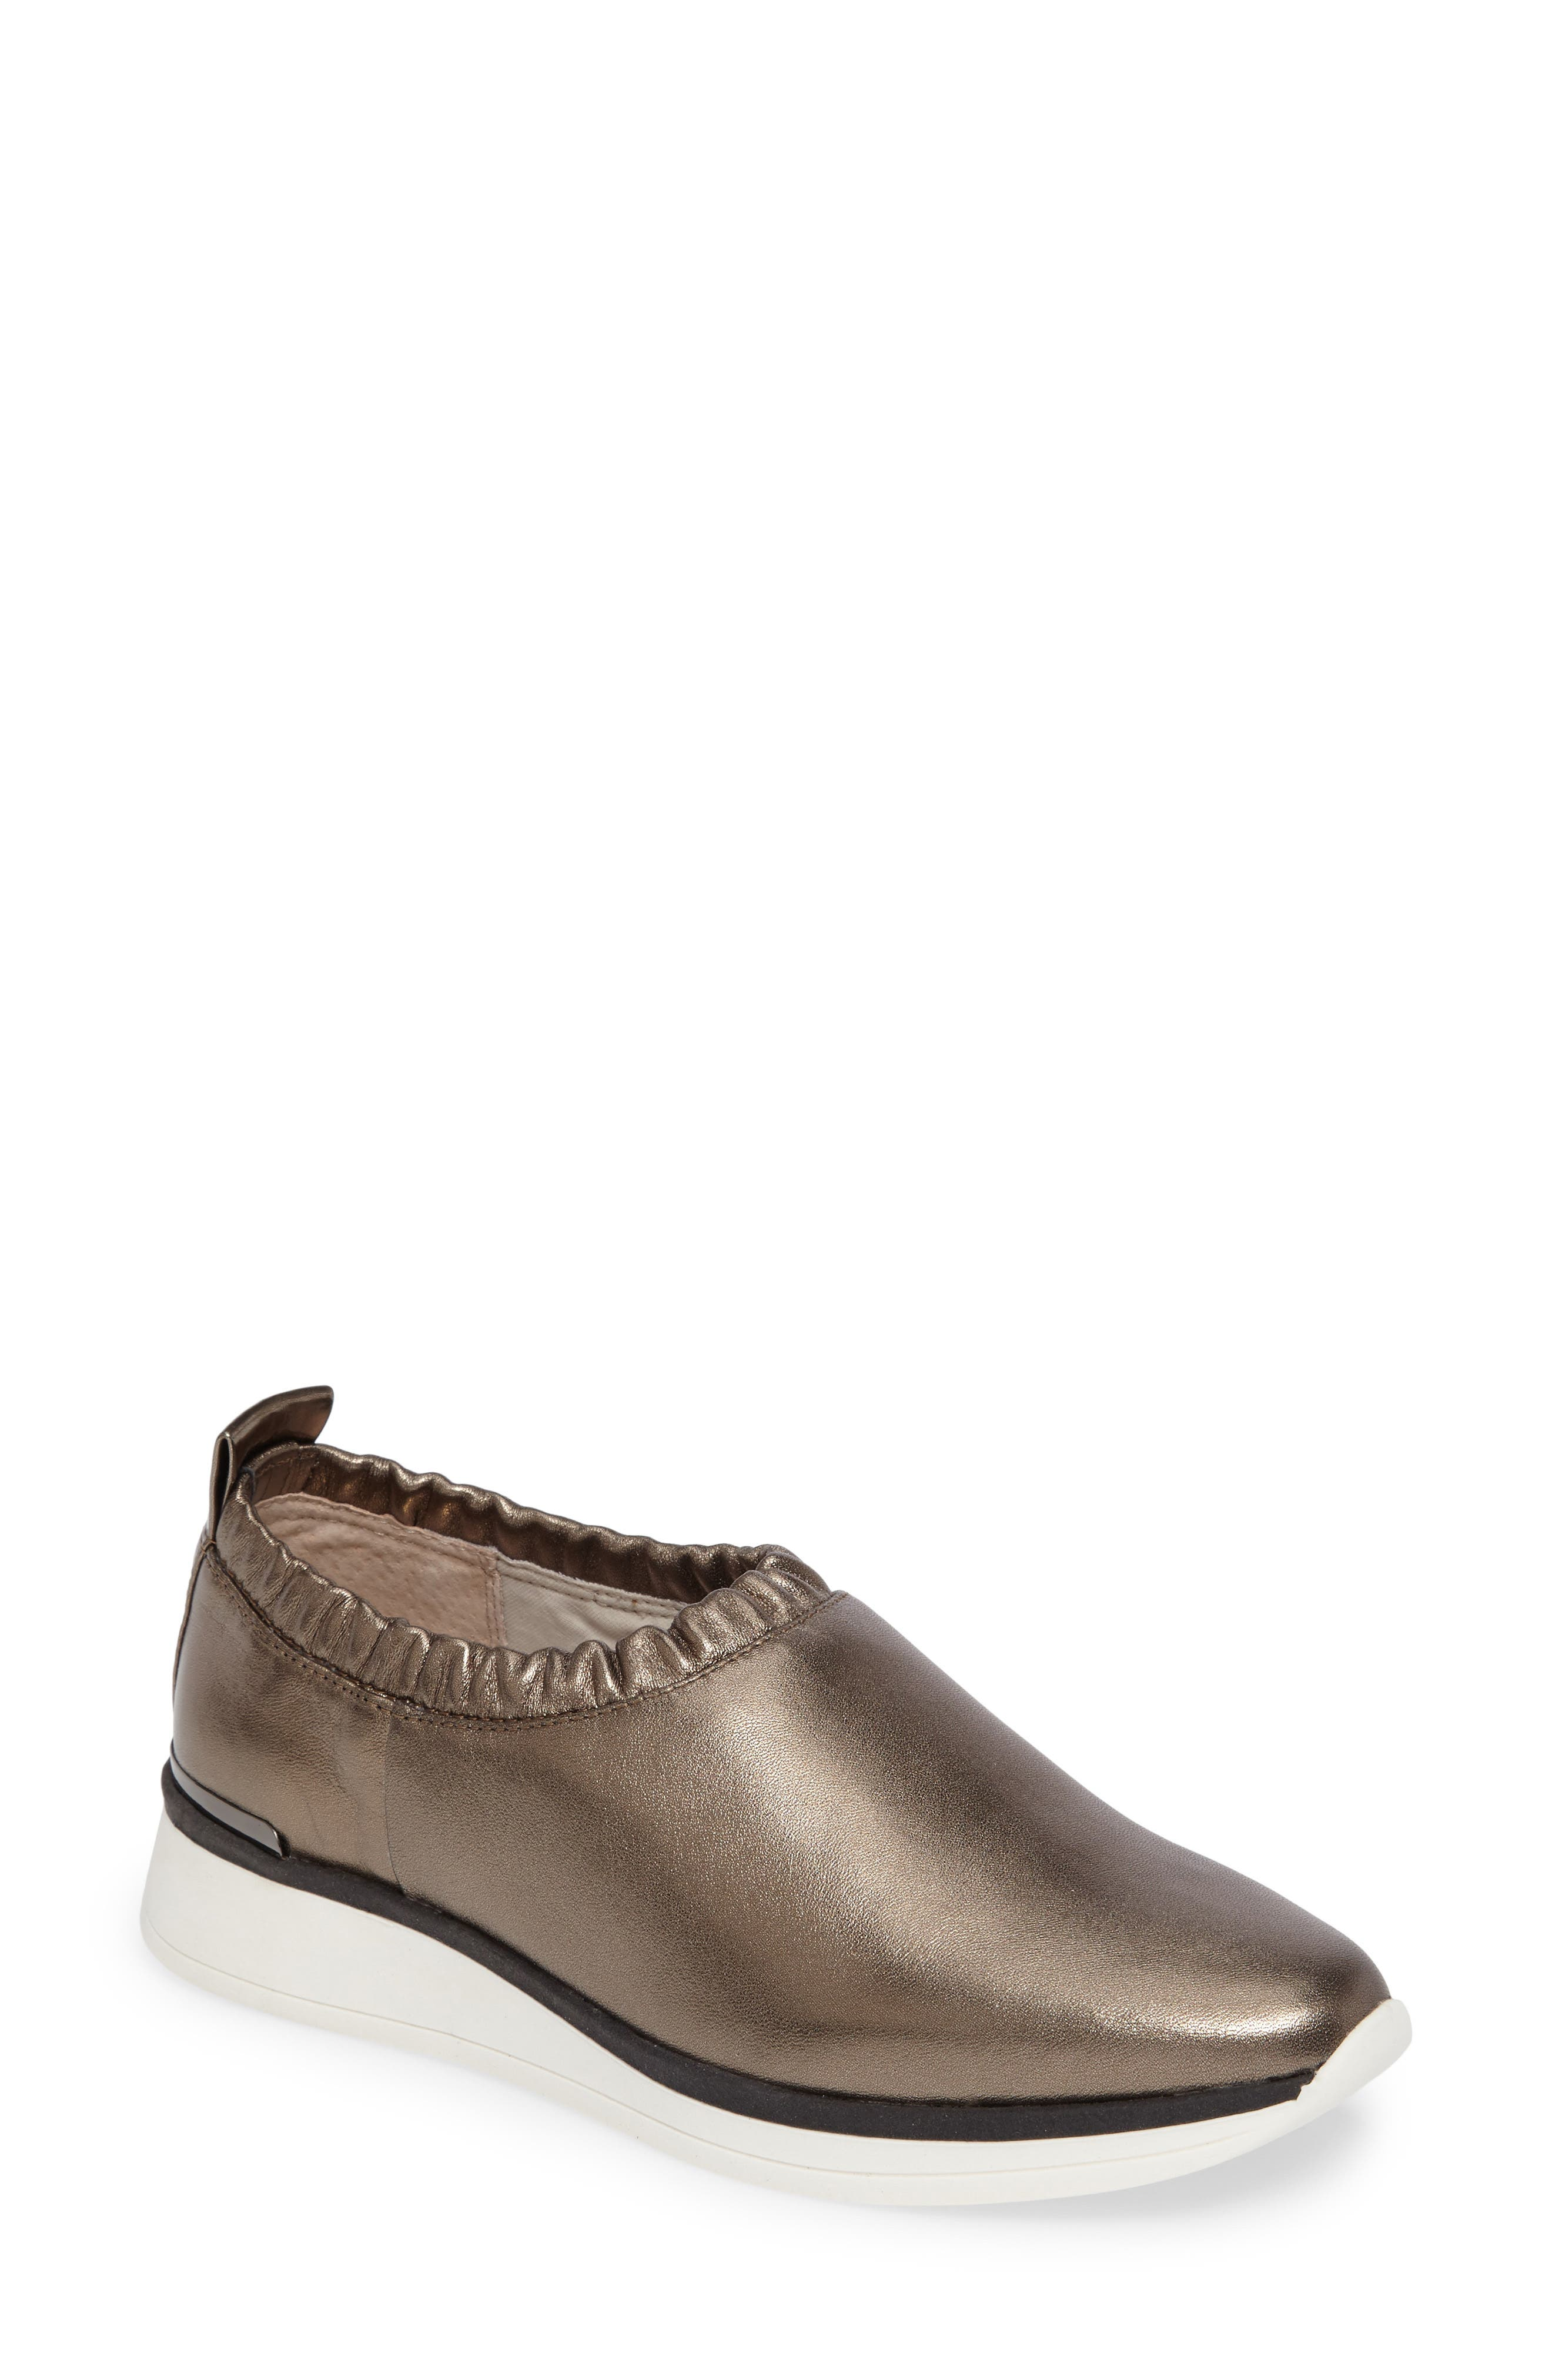 Louise et Cie Brogen Slip-On Sneaker (Women)